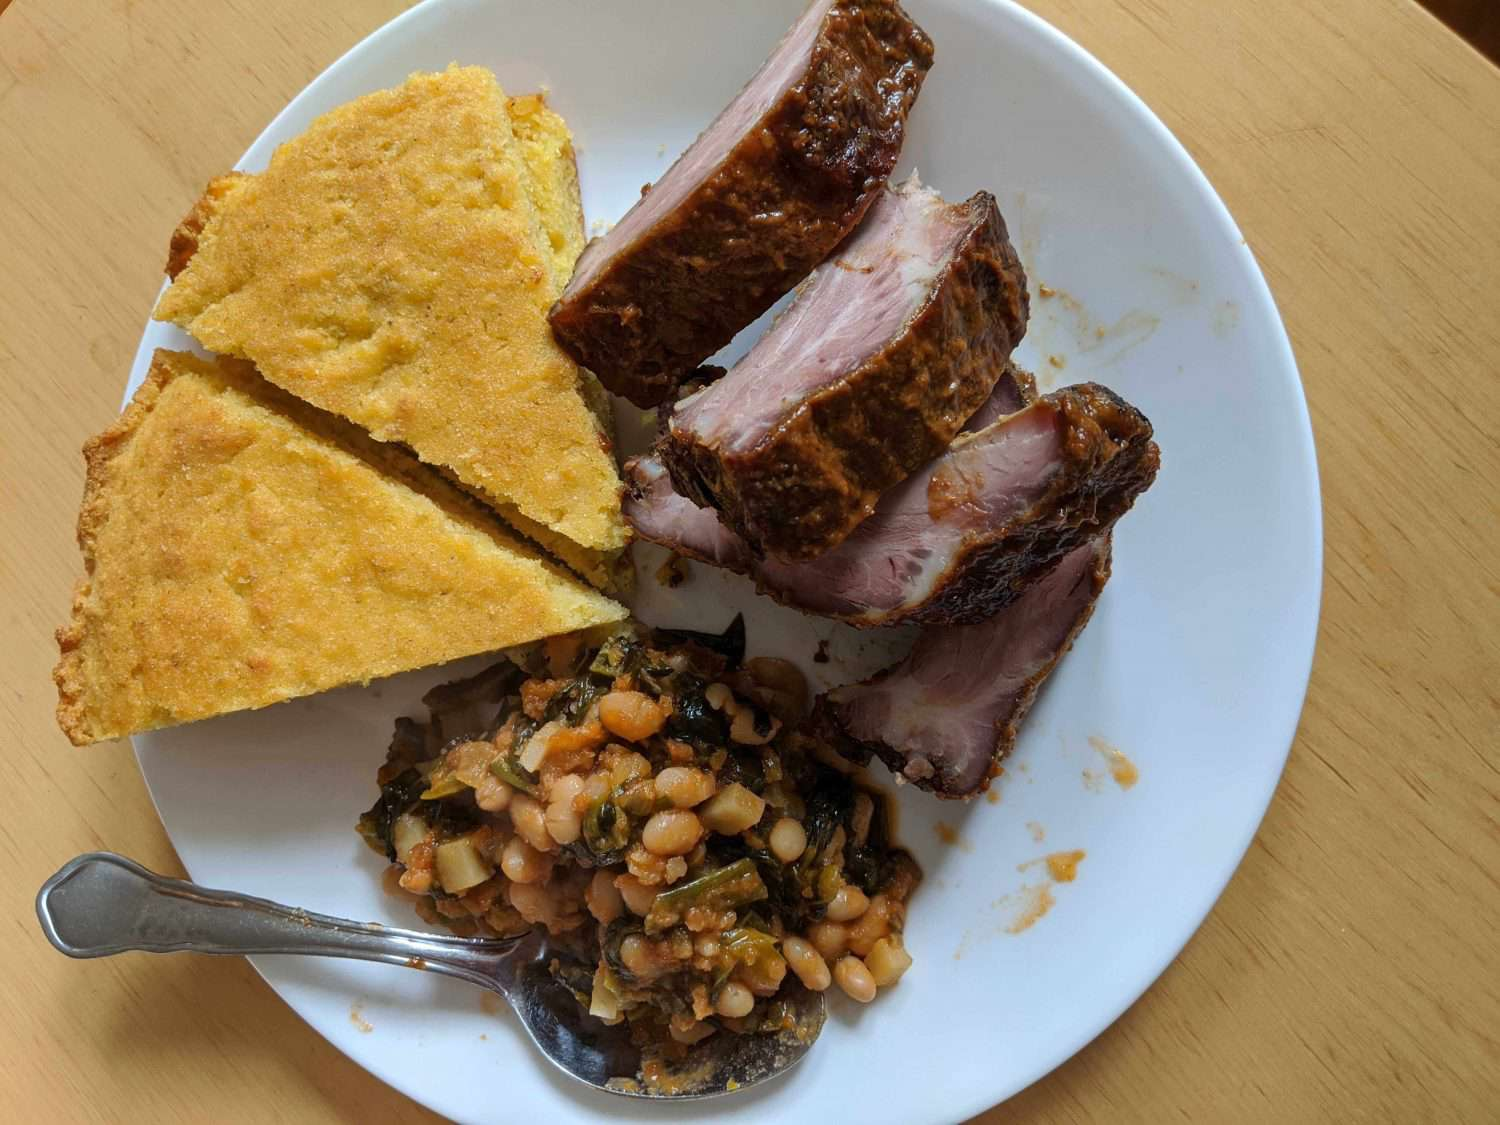 Cornbread, ribs, and beans and greens on a plate